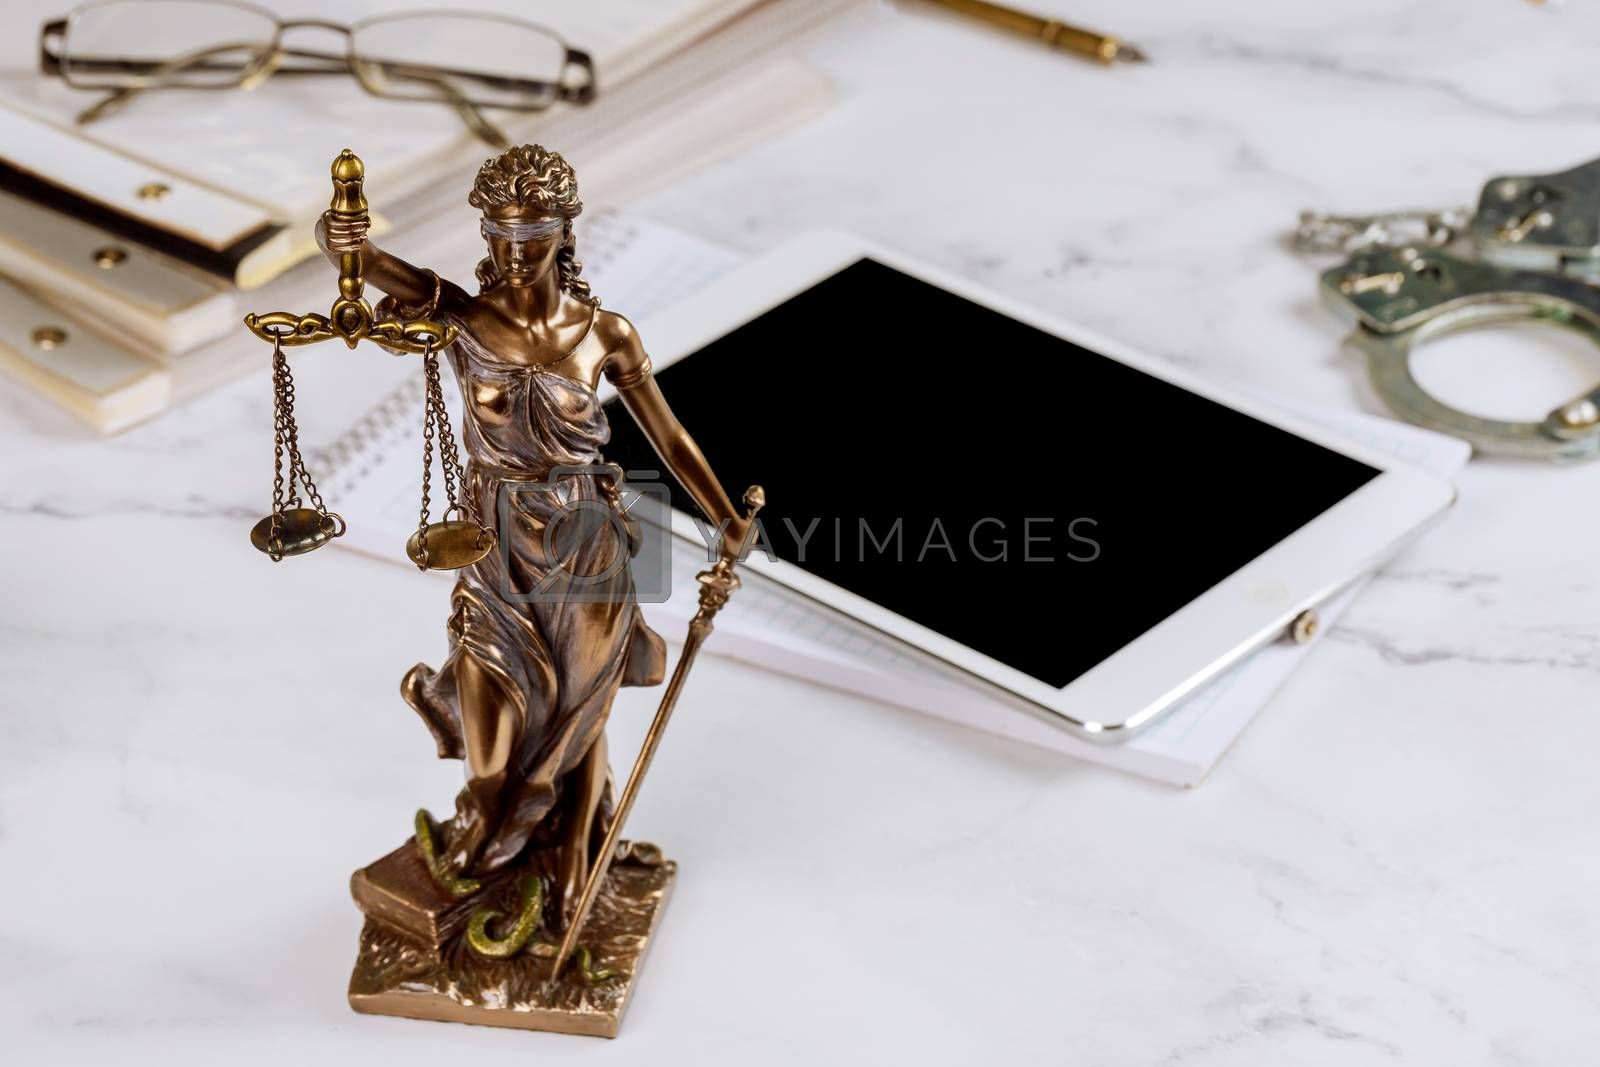 Royalty free image of Lawyer office Statue of Justice with scales and lawyer working on a digital tablet by ungvar